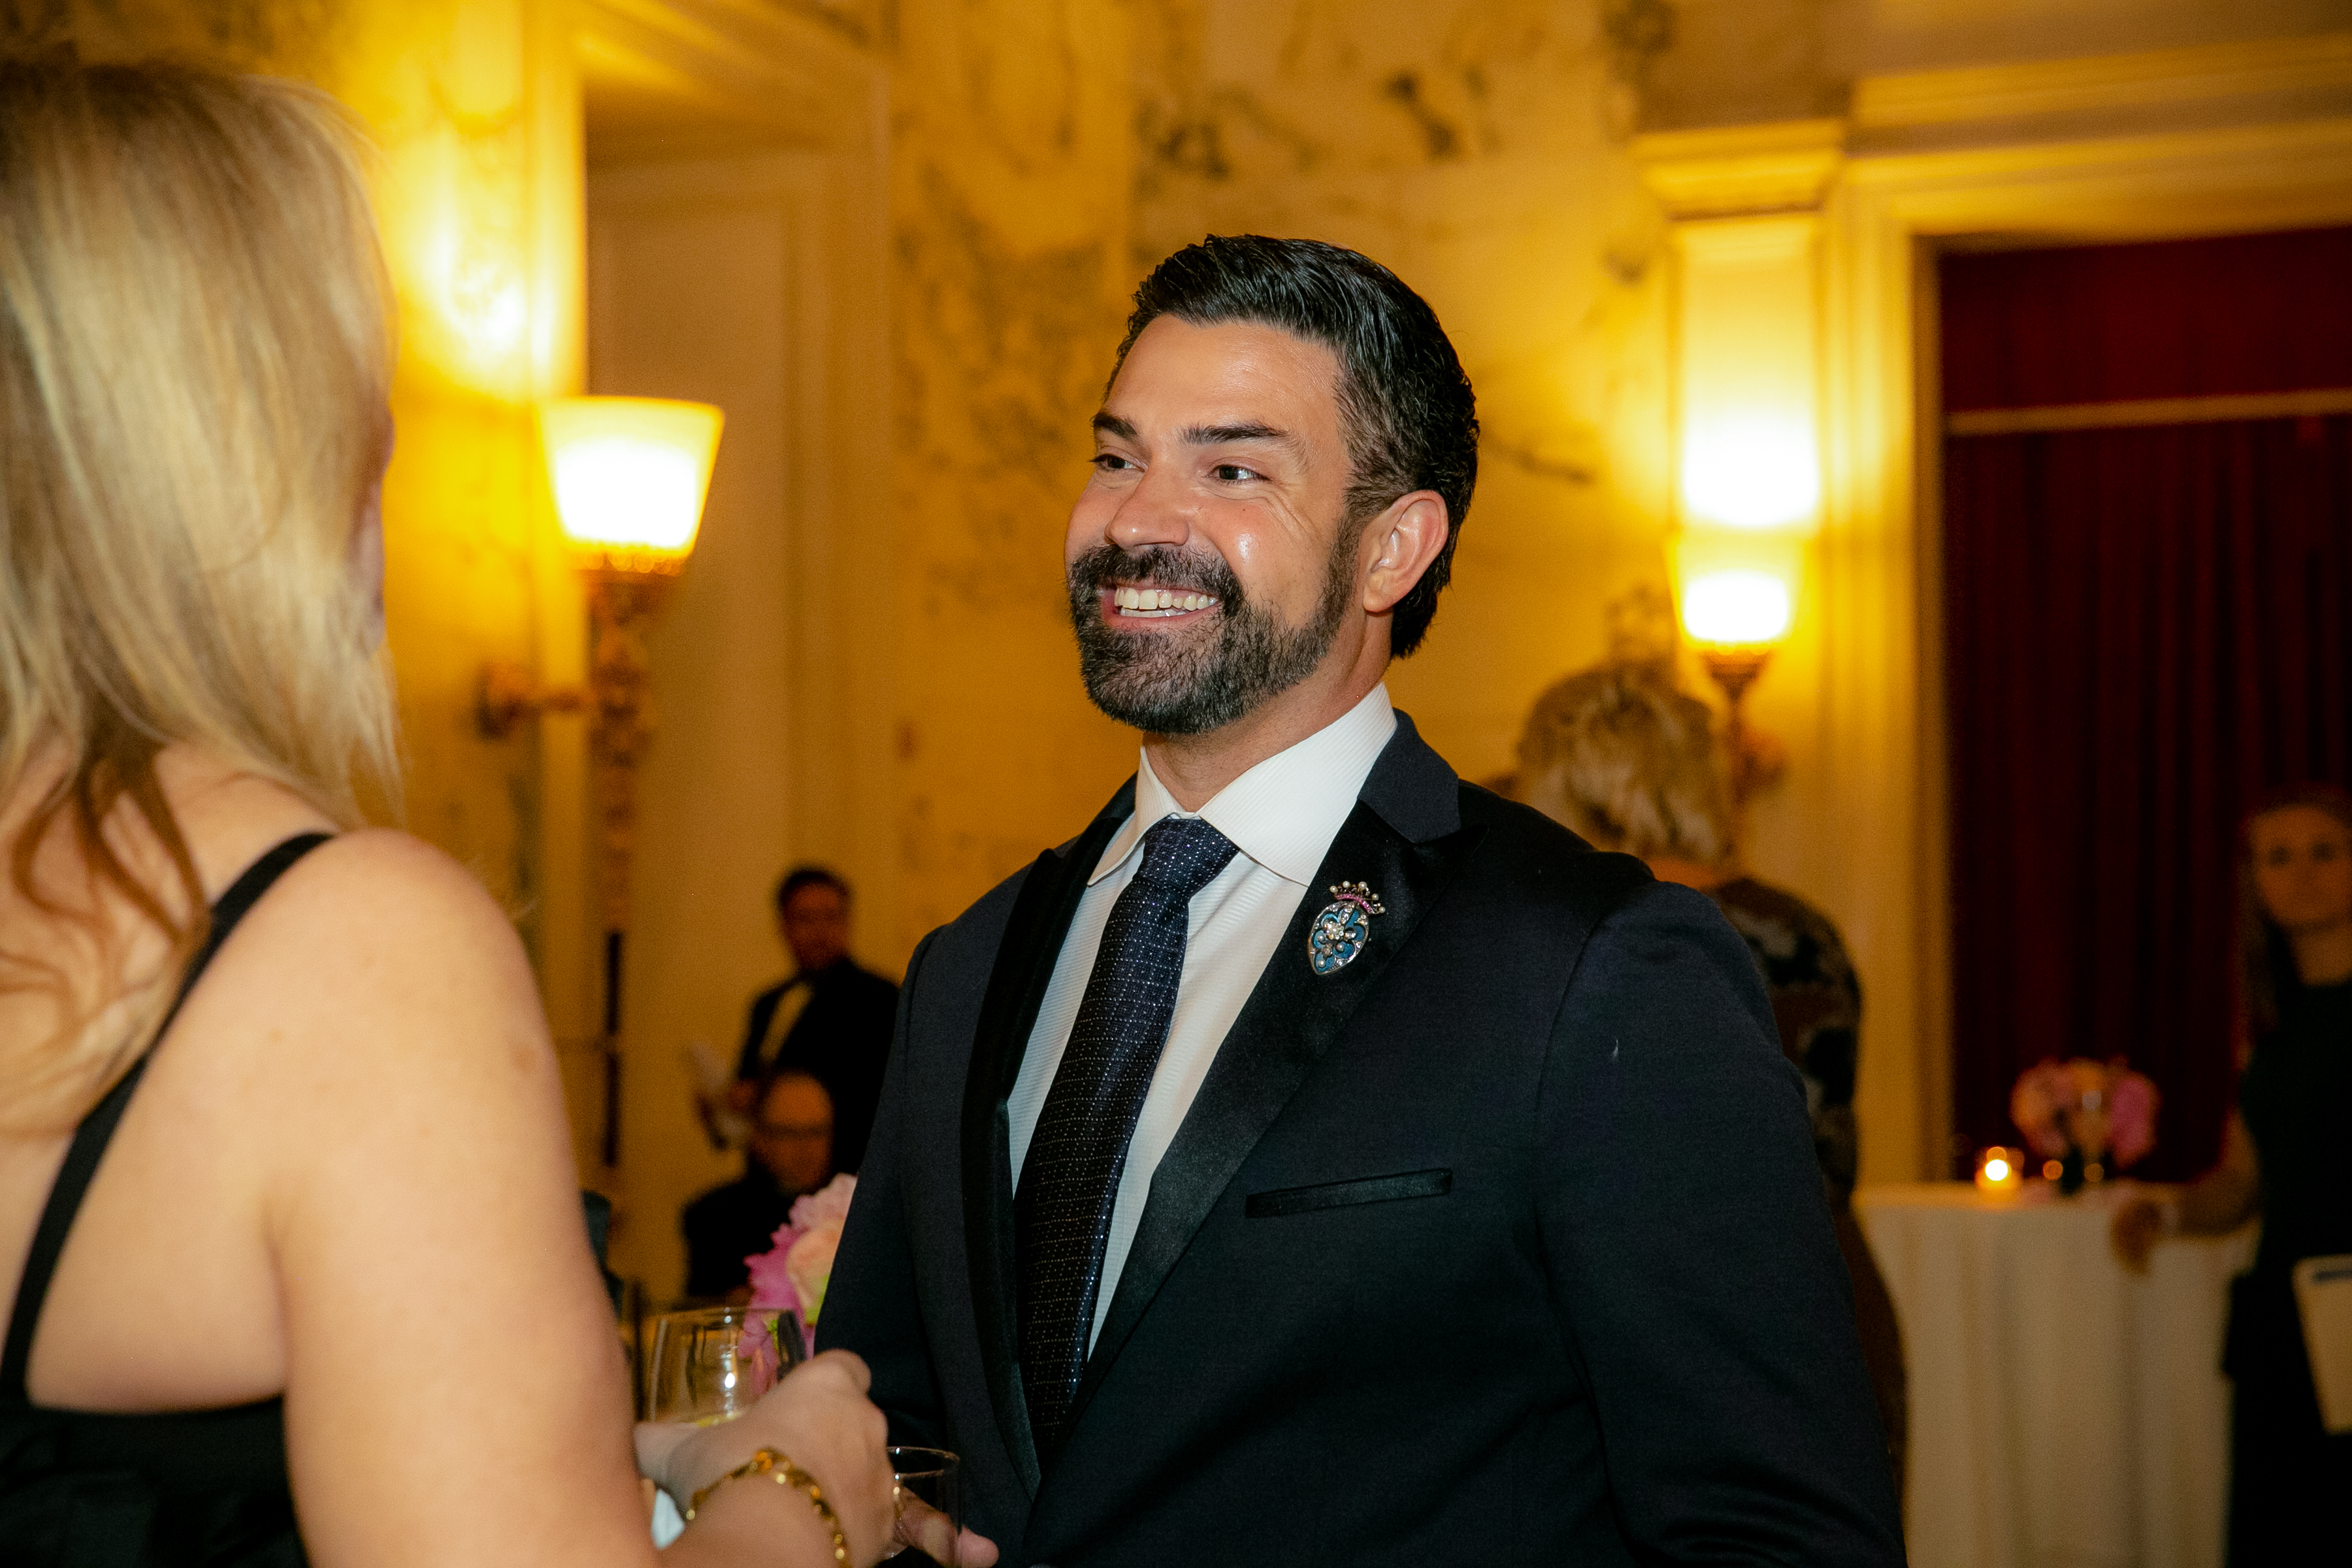 A man with a beard and black suit smiles at a woman at the Gala